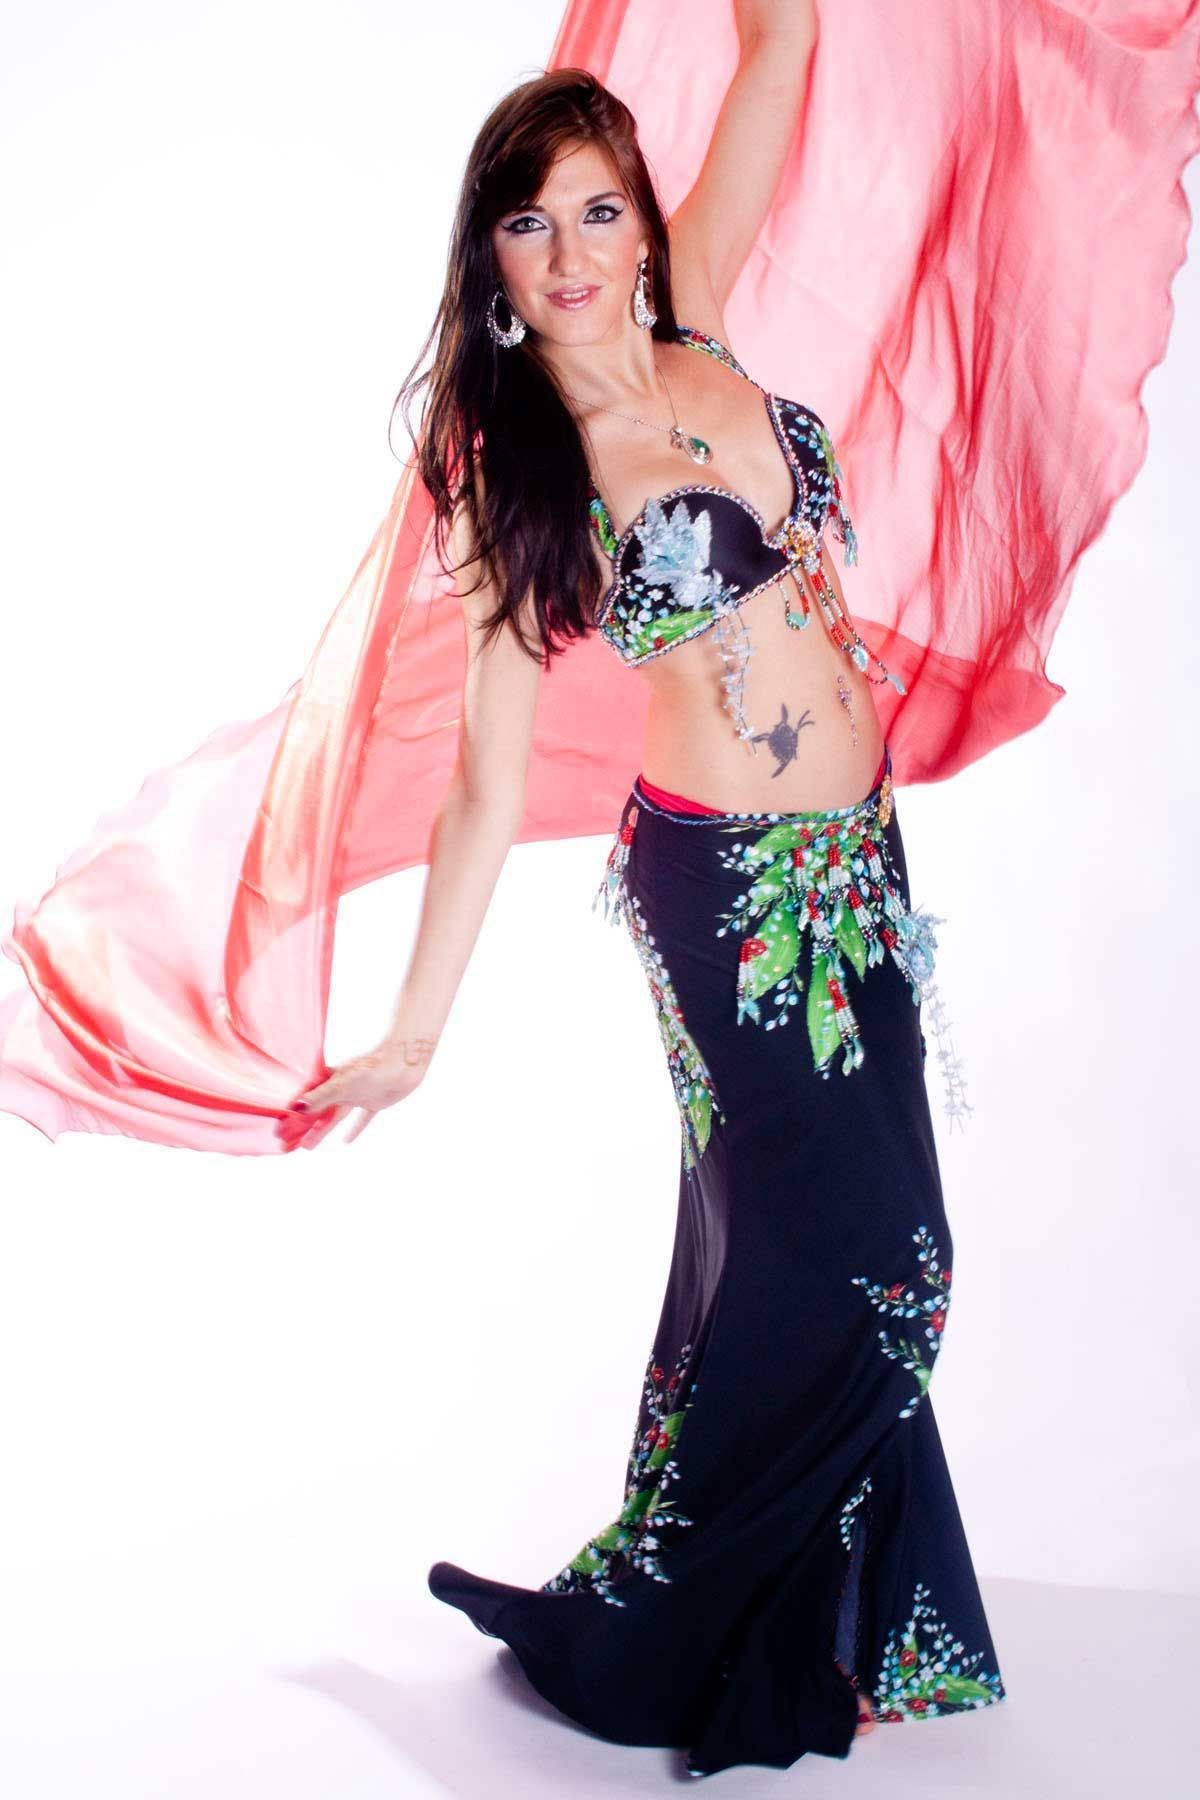 Belly dance cabaret costume - True Elegance | My style ...